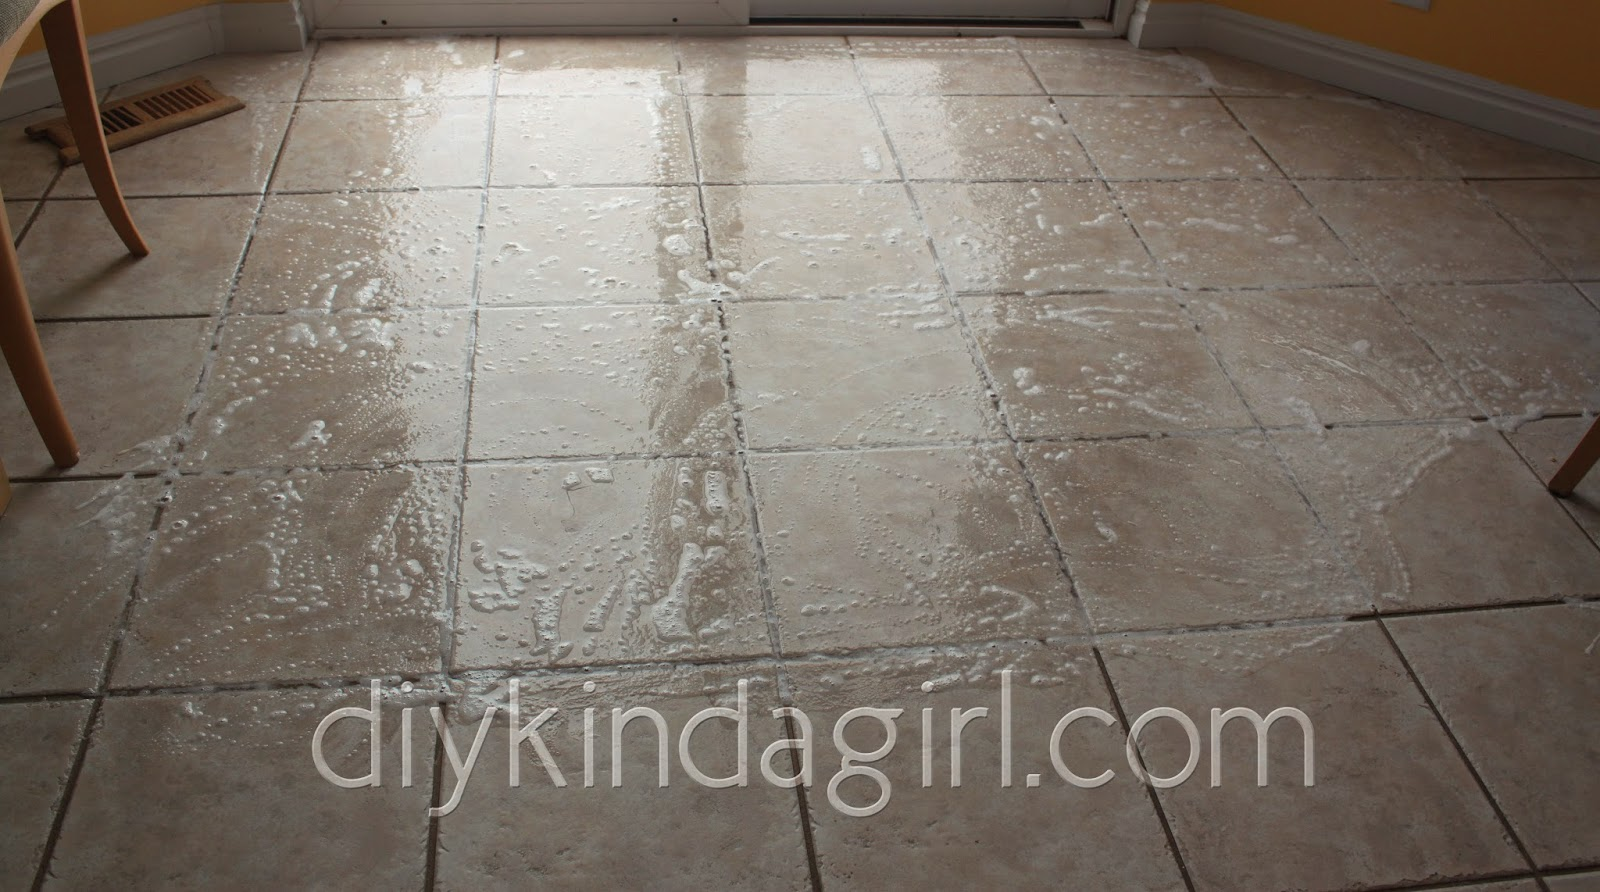 Diy kinda girl diy household tip cleaning grout oxiclean vs woolite dailygadgetfo Gallery